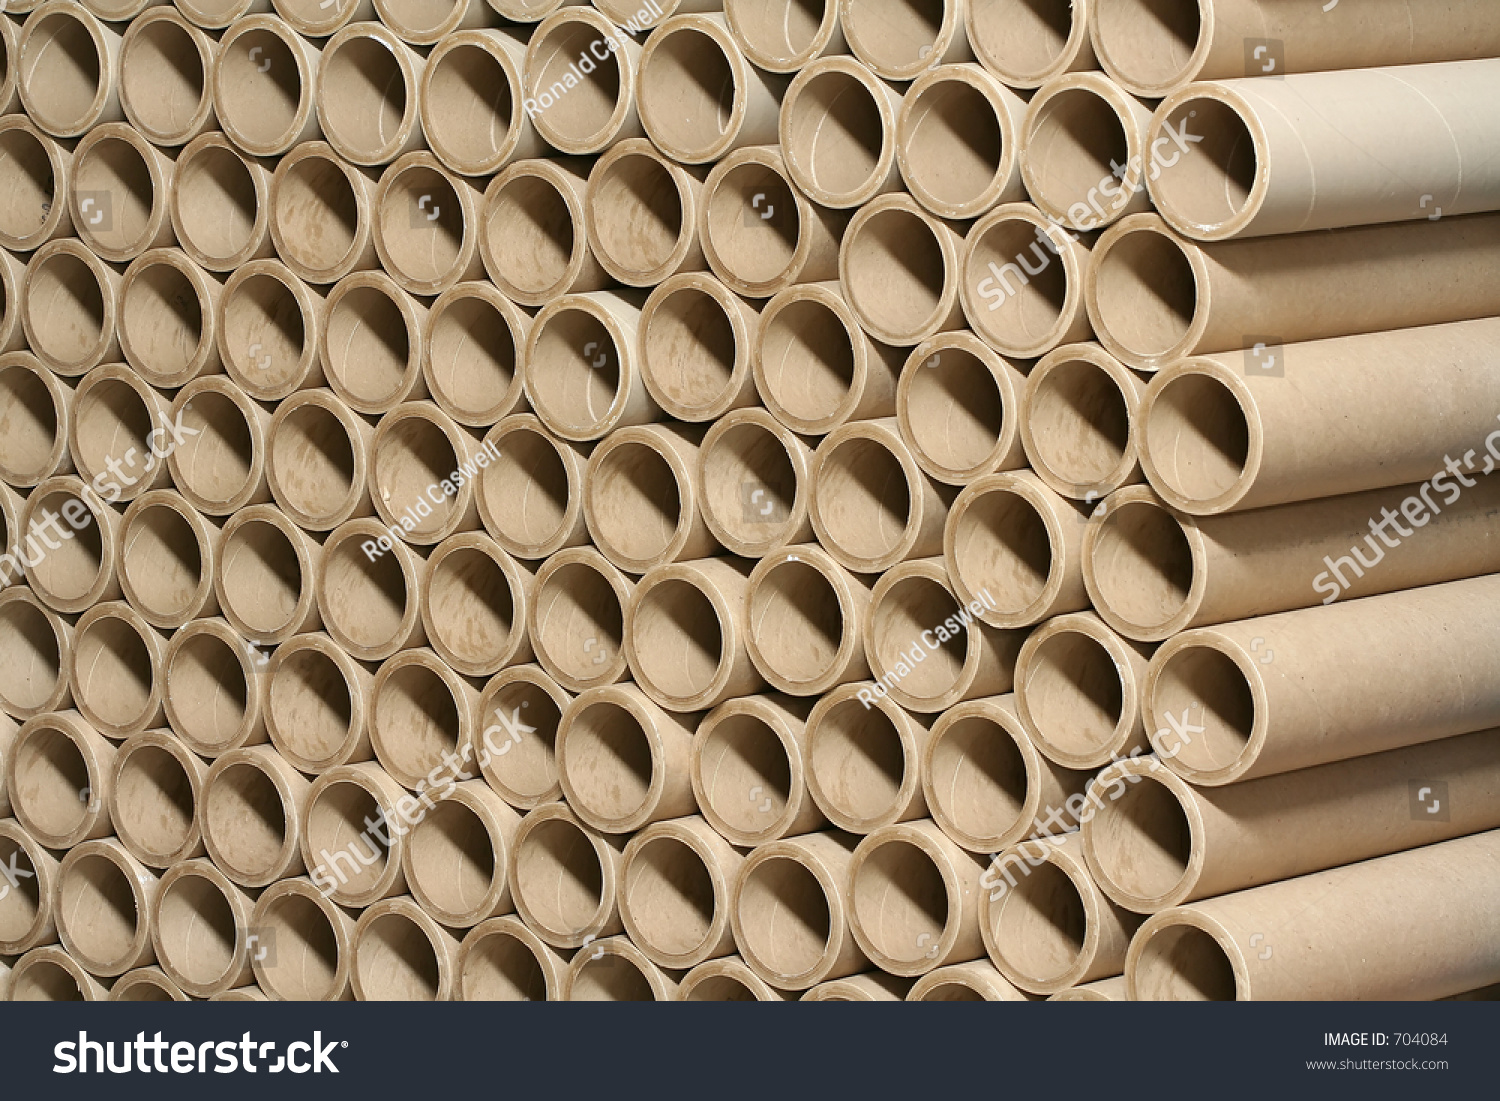 cardboard tubes preview save to a lightbox cardboard tubes